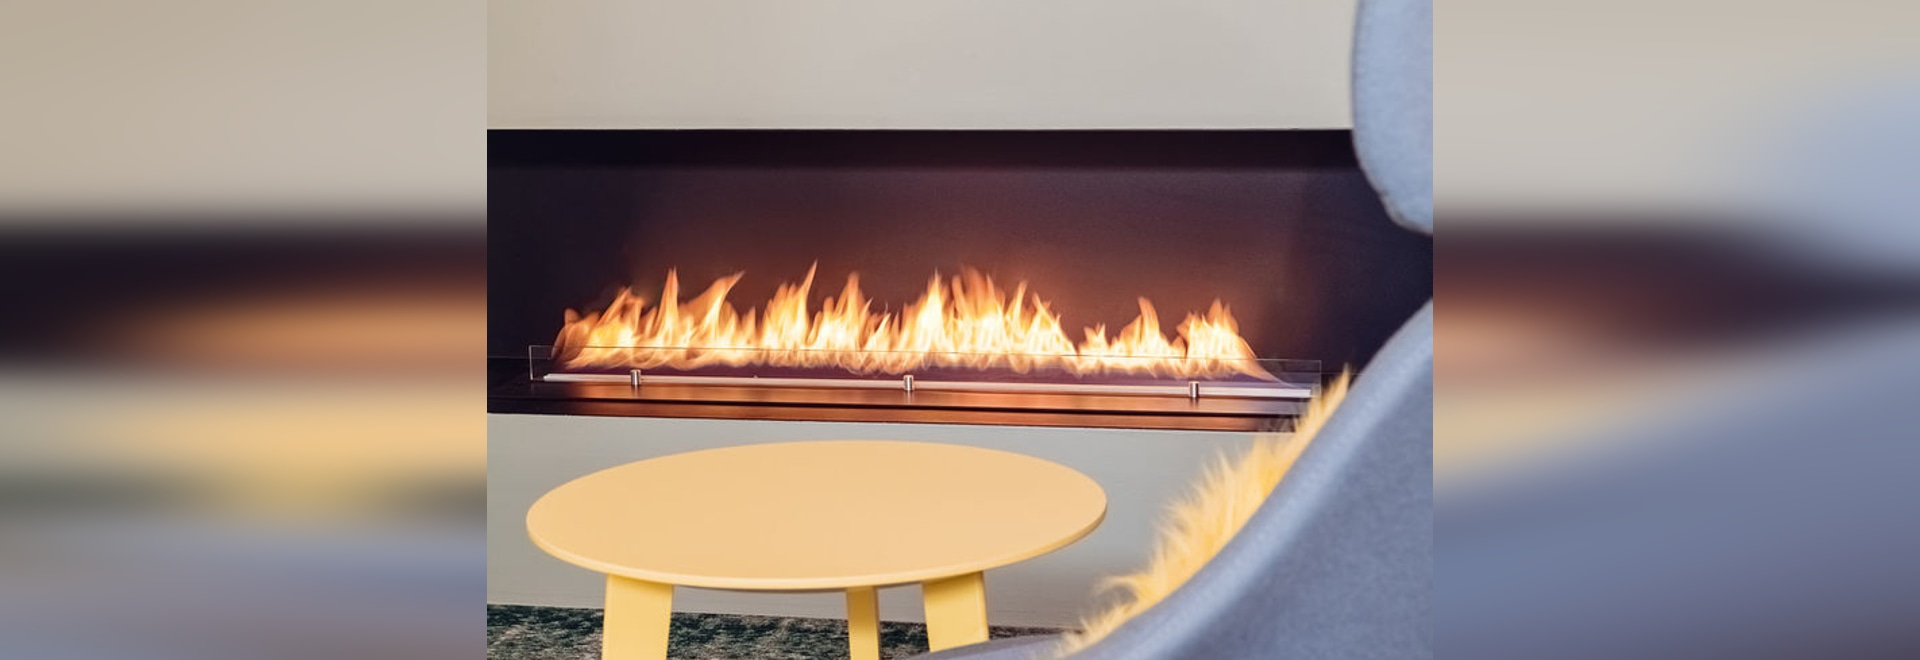 NEW: bioethanol fireplace insert by Planika Fires